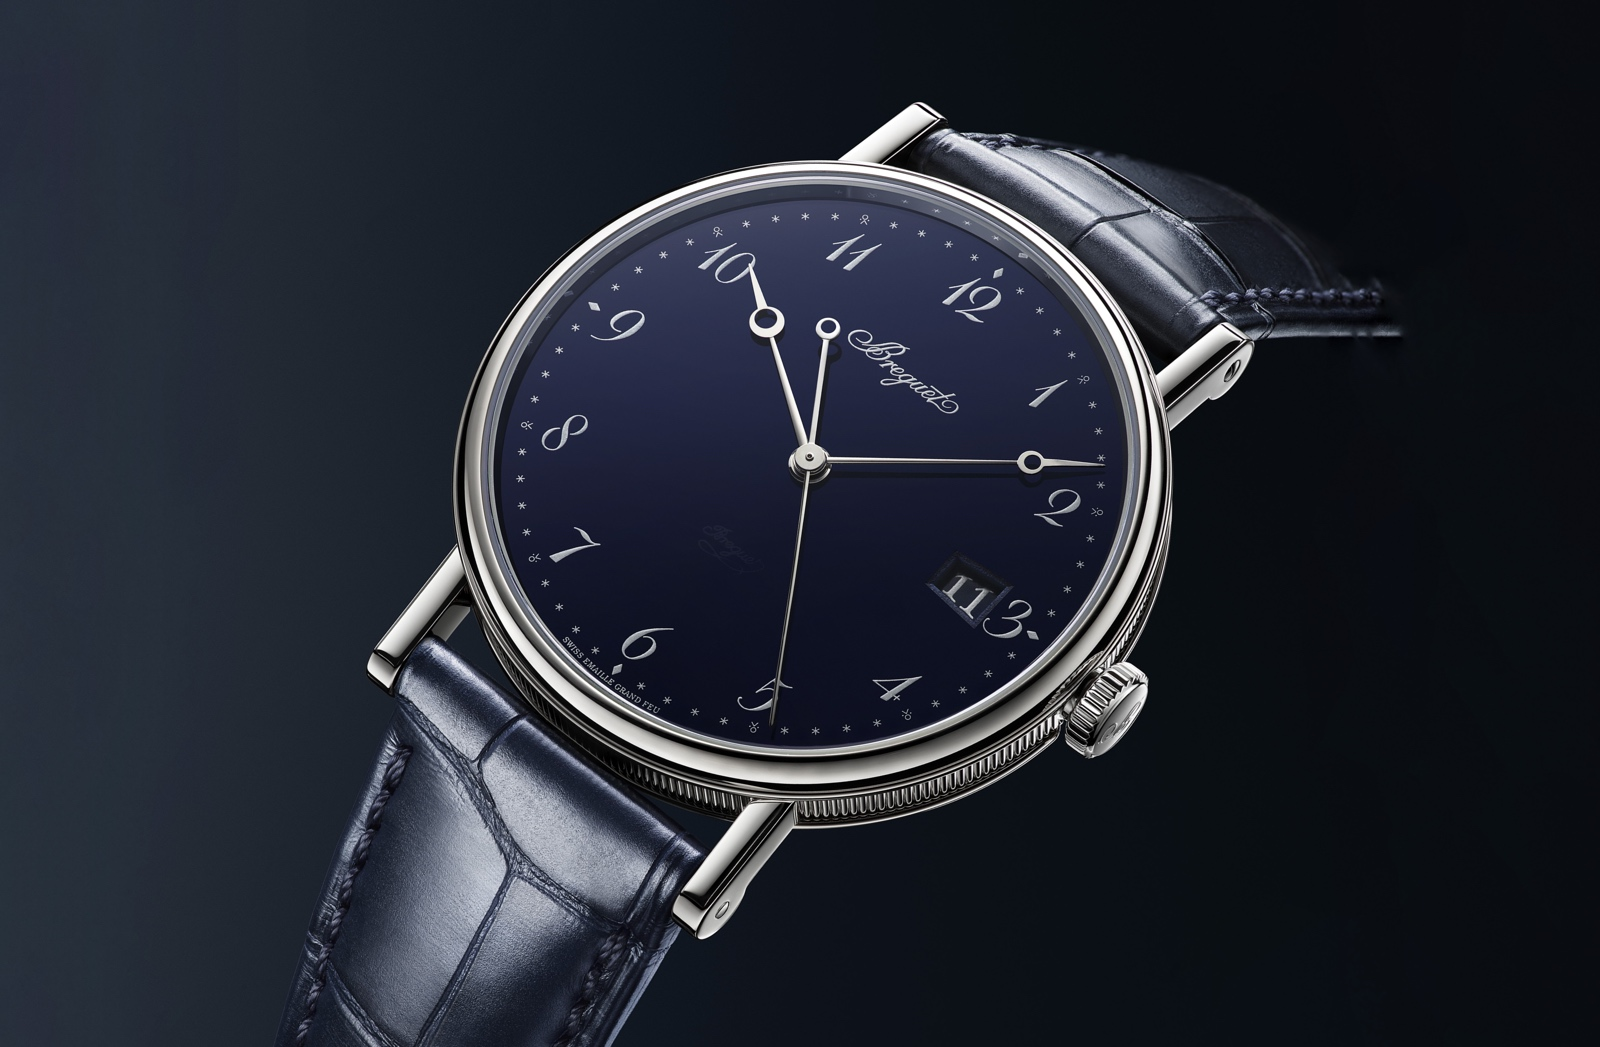 Breguet en el Time to Move 2019 - Classique 5177 Blue Enamel